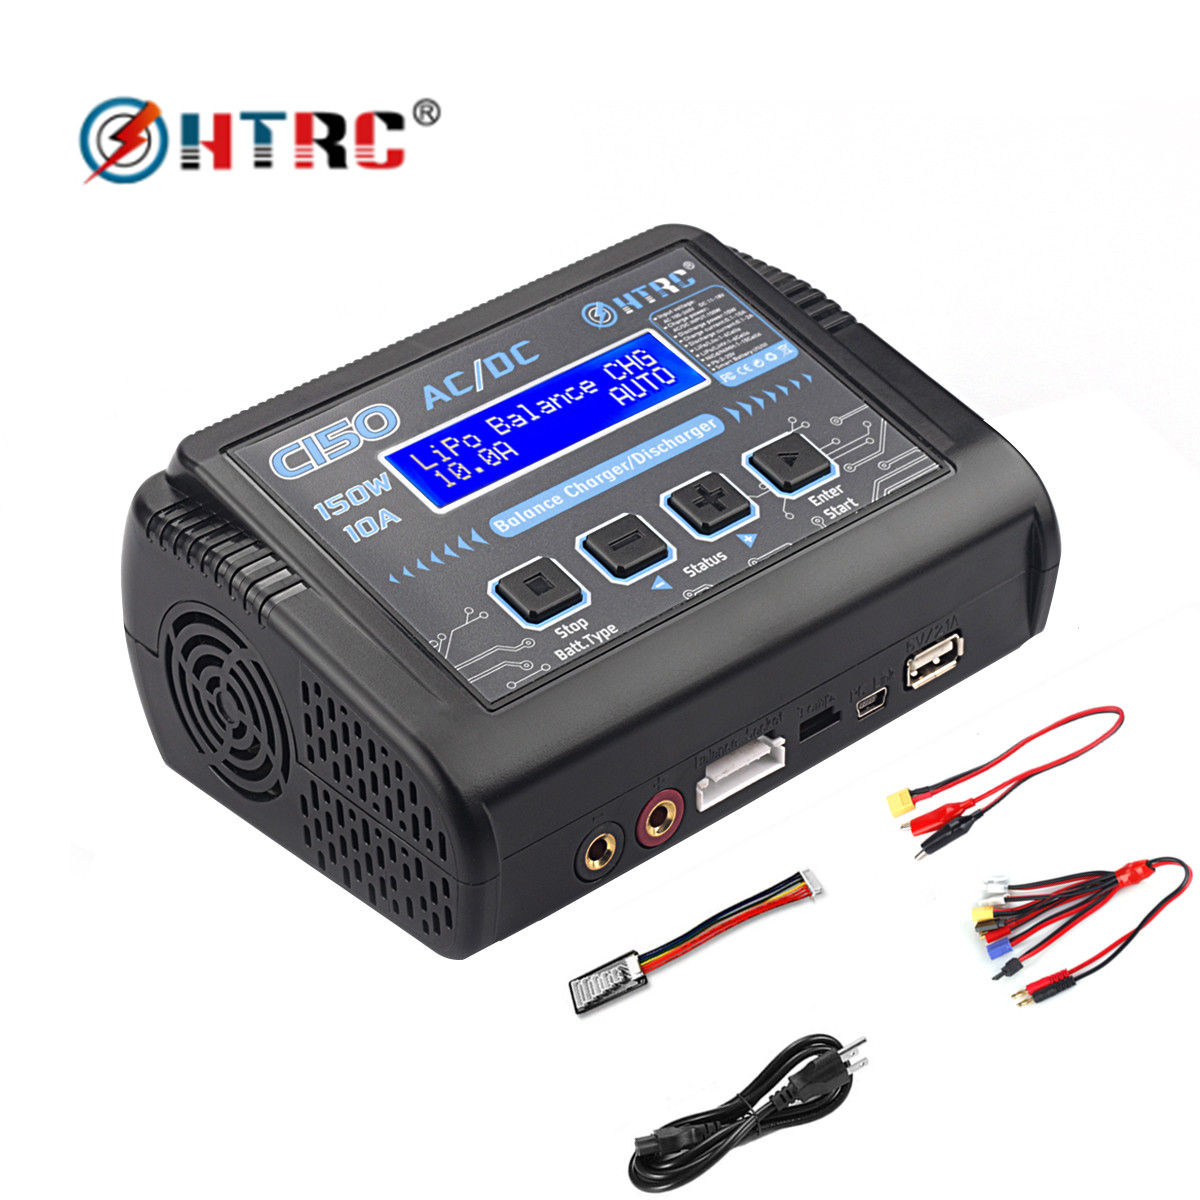 HTRC Lipo-Charger Rc-Battery Smart Nimh Nicd 150W C150 for Lihv Life-Lilon Pb Ac/Dc 10A title=